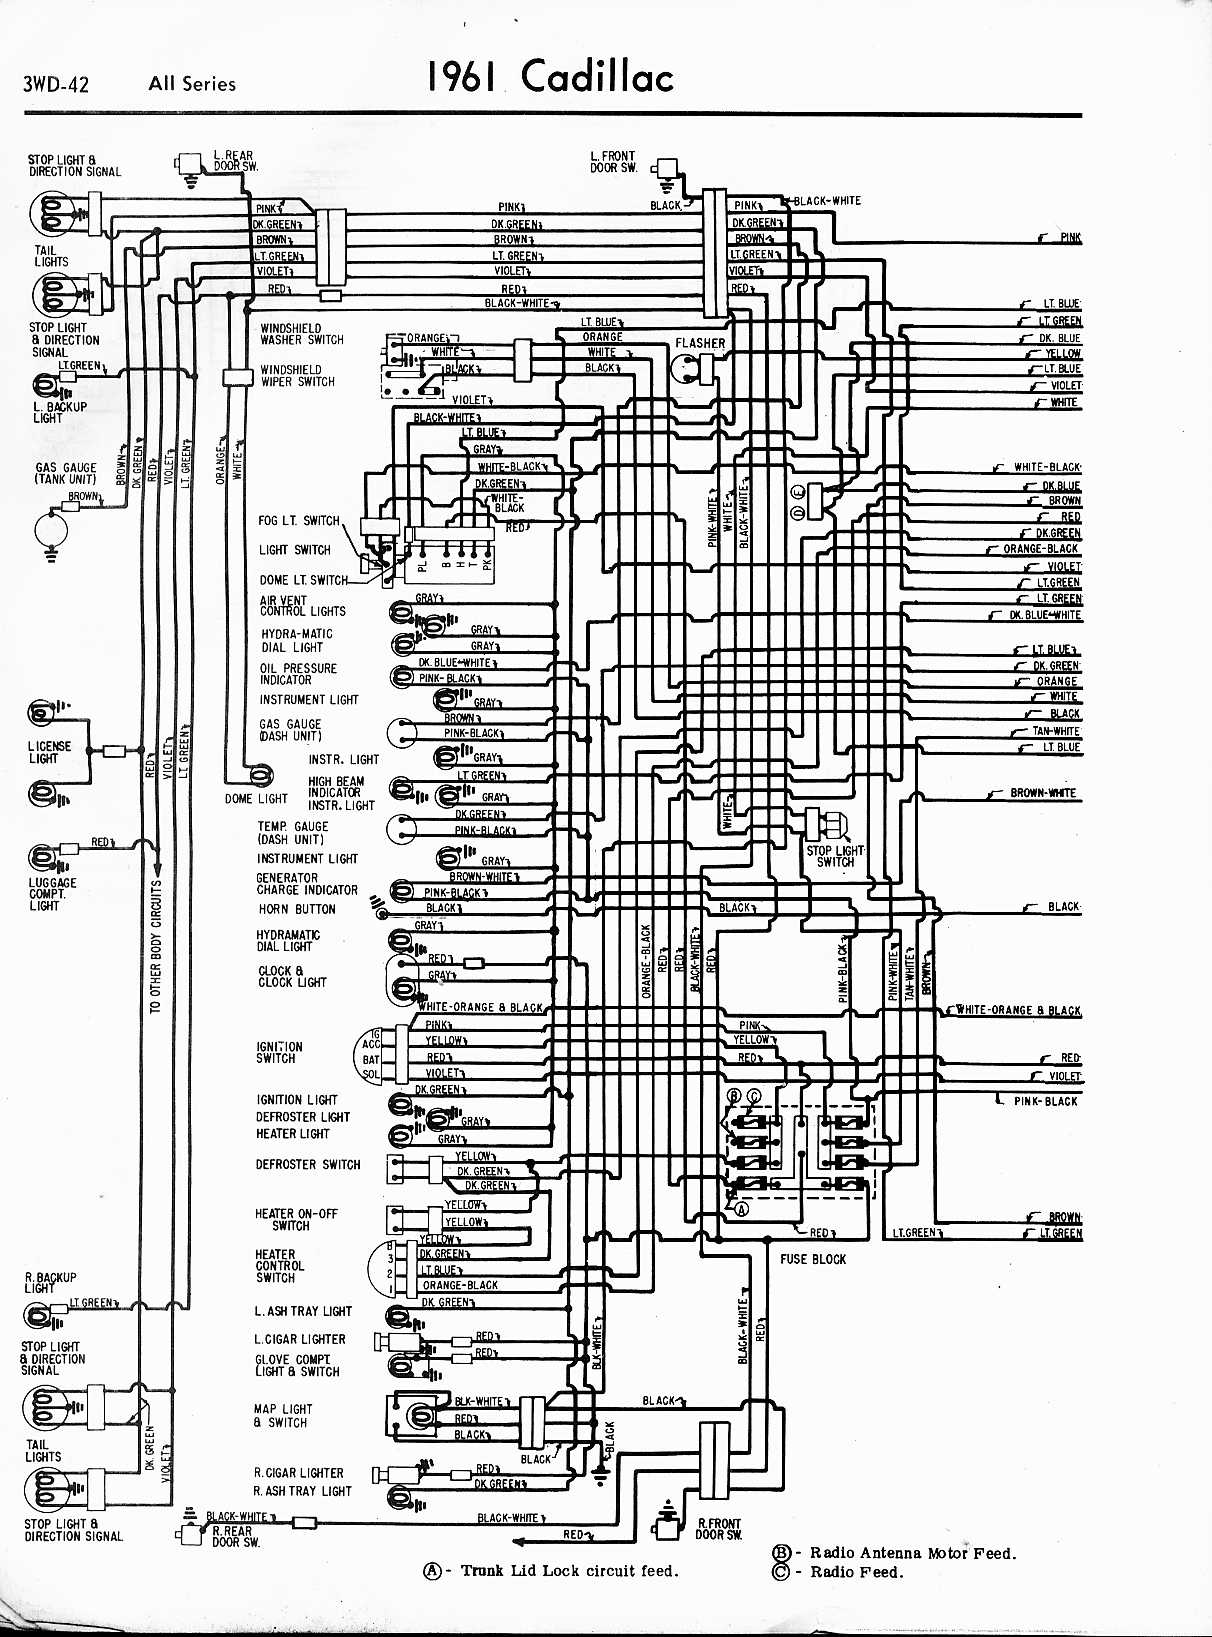 cadillac 1963 windows wiring diagram all about diagrams cadillac wiring diagrams: 1957-1965 c10 power windows wiring diagram #14